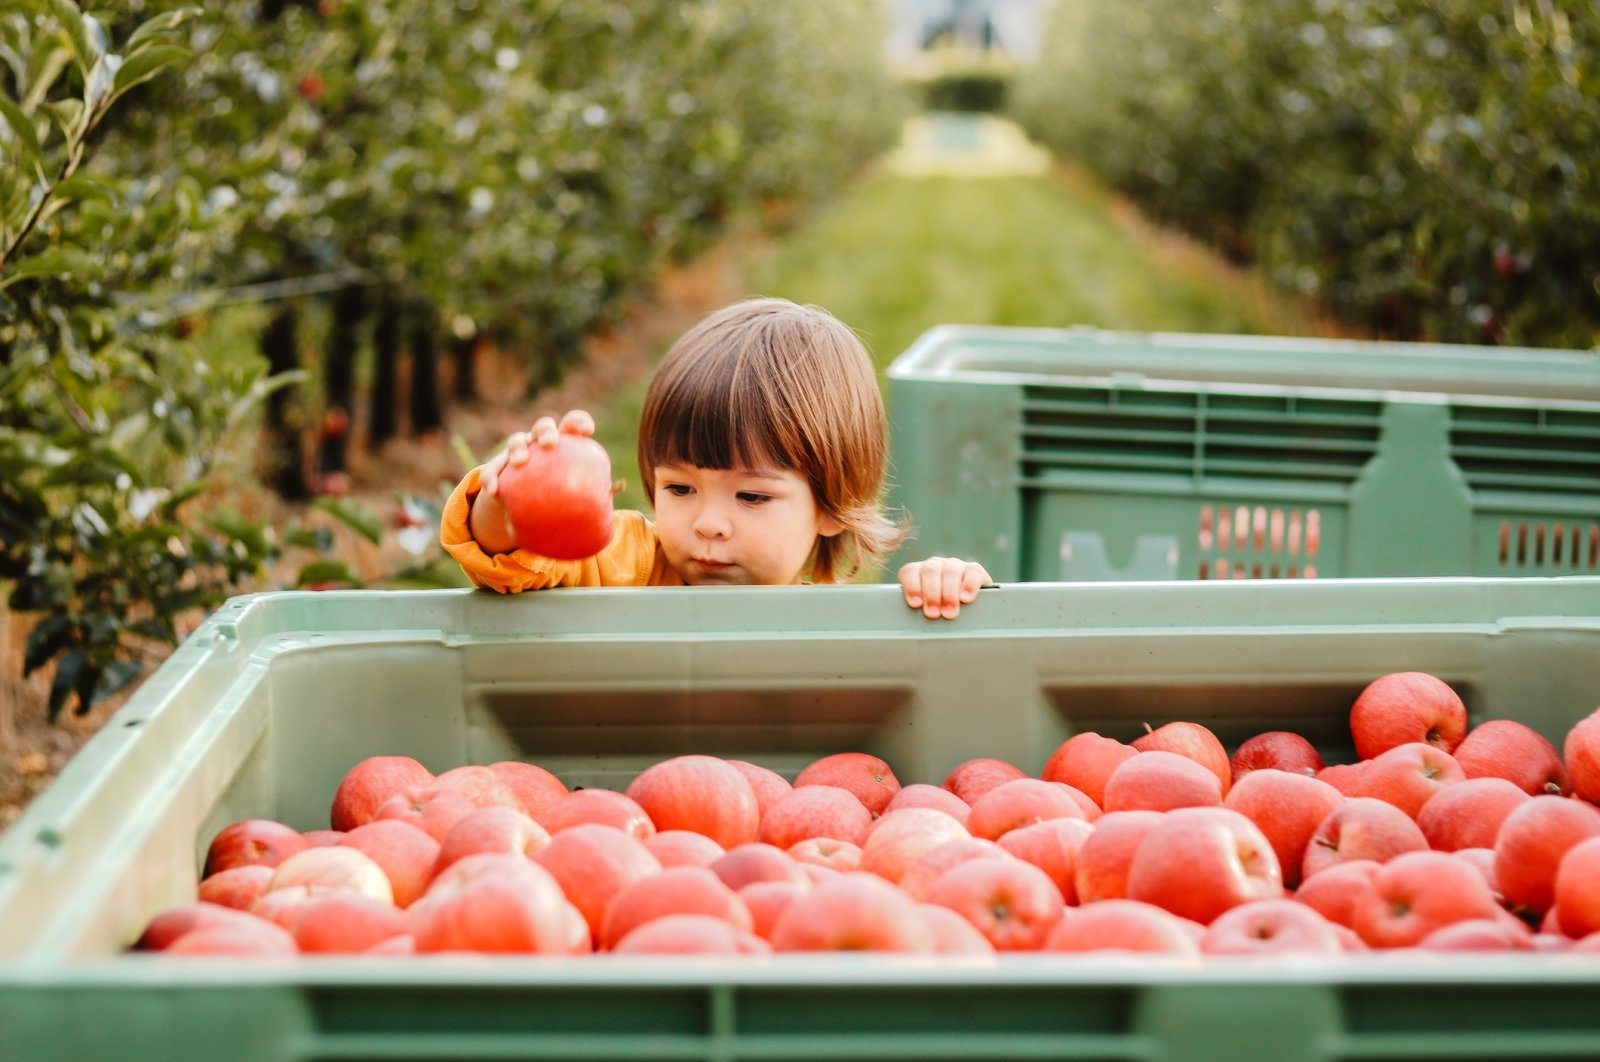 A weekend trip to your nearestappleorchard is a perfect day outdoors, especially for families with smaller kids. (iStock Photo)